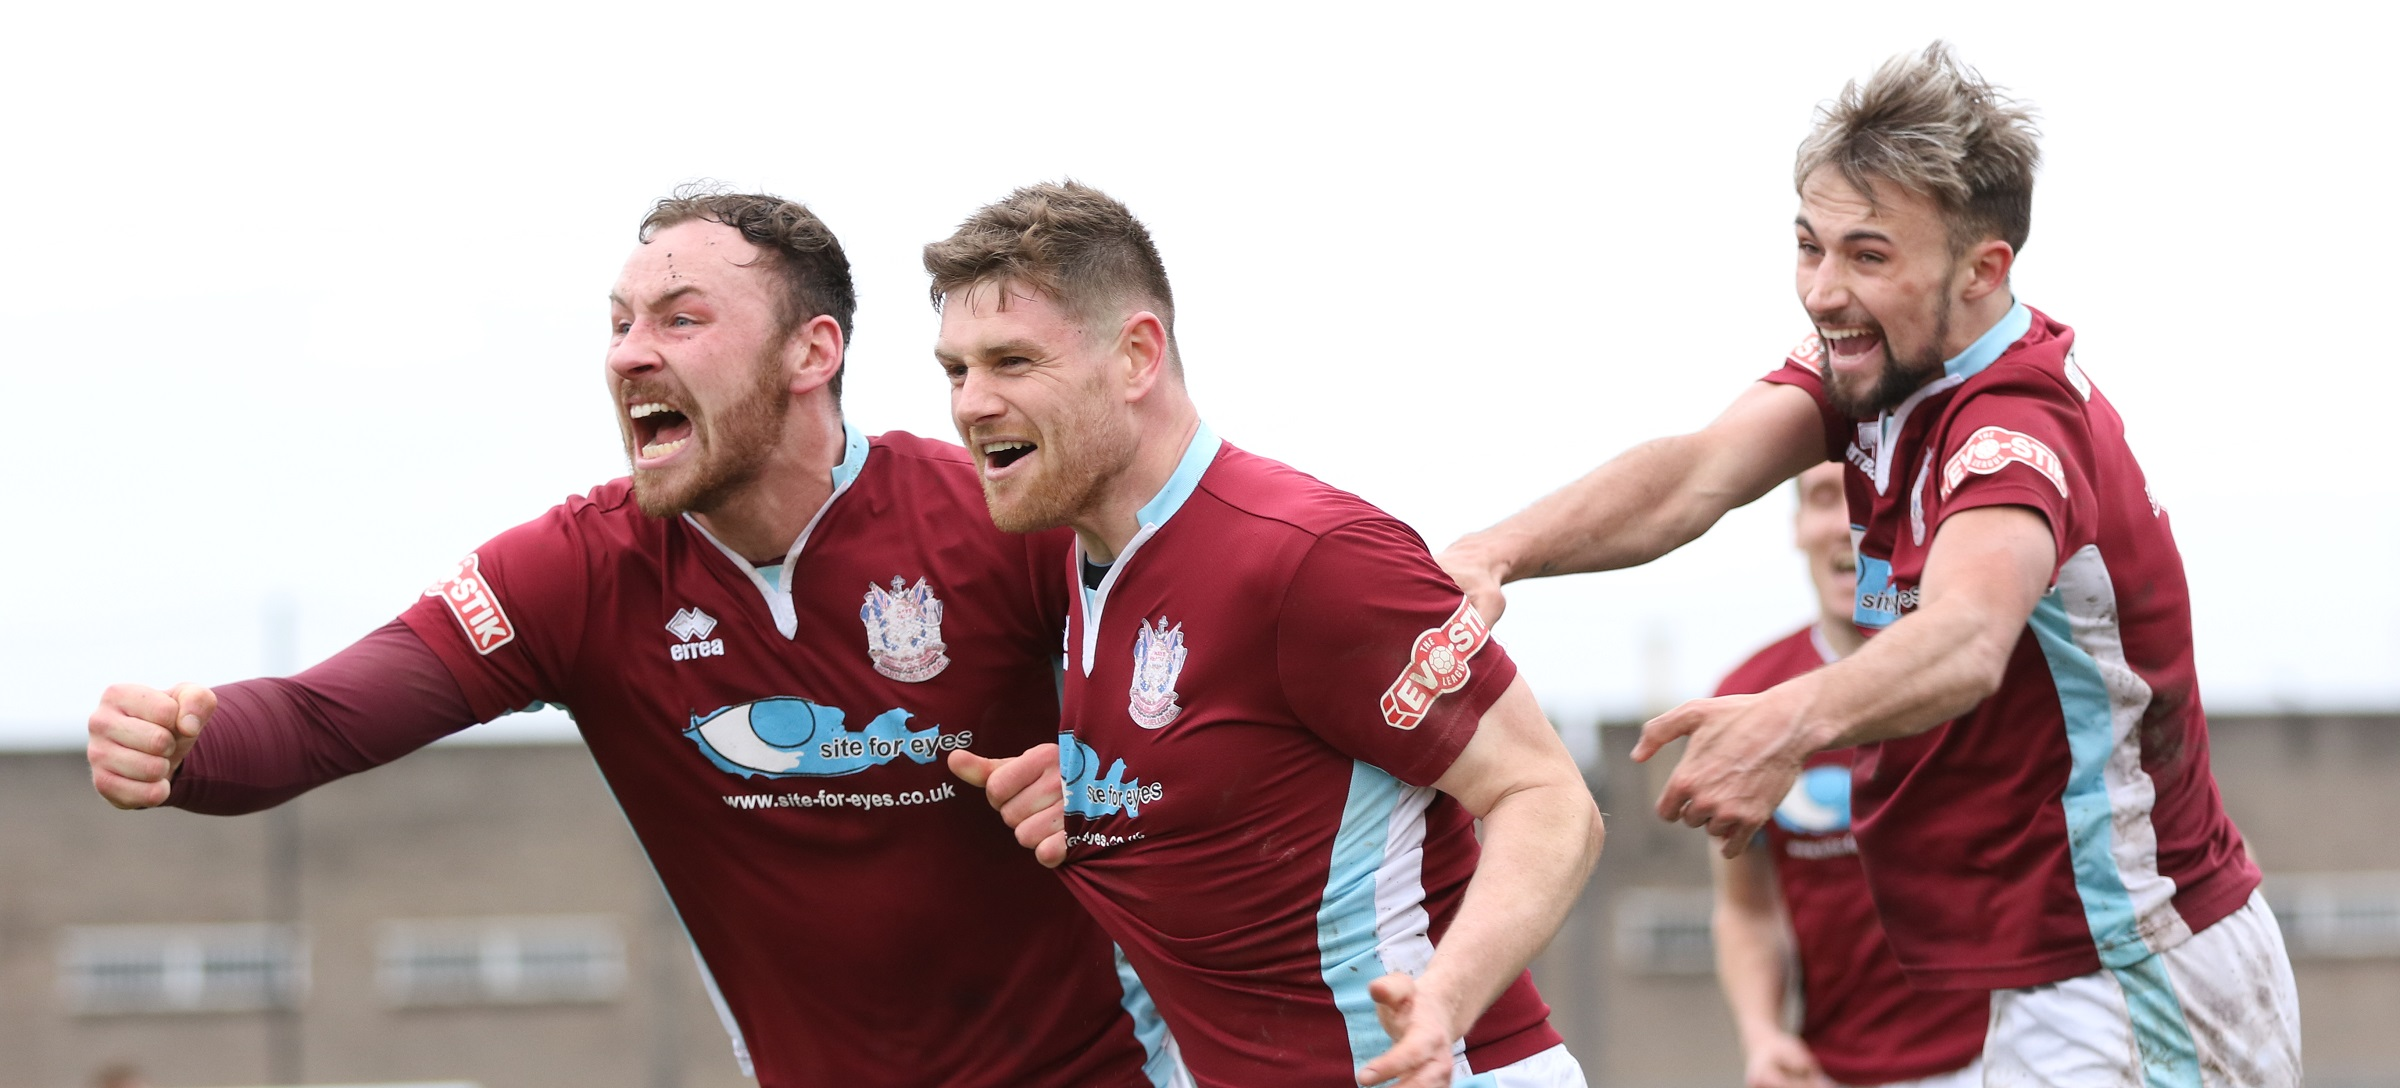 South Shields vs Prescot Cables